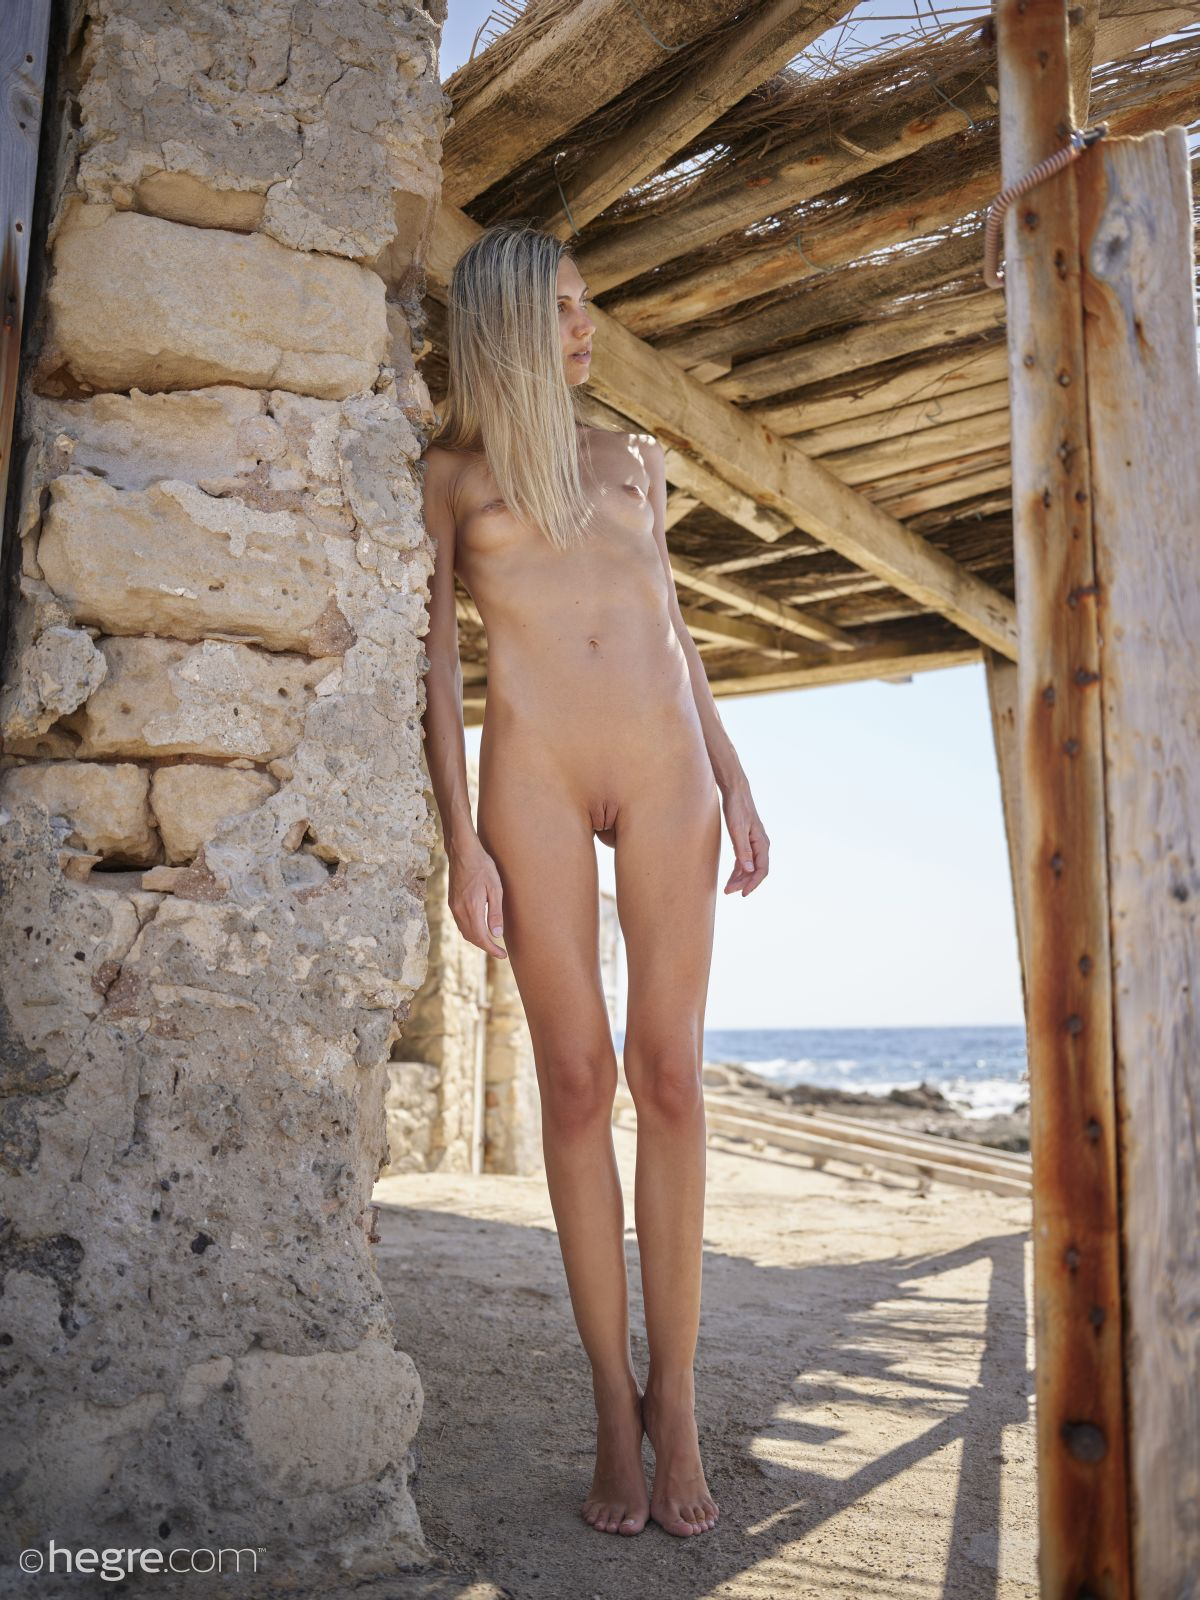 an Italian girl named Francy posing nude